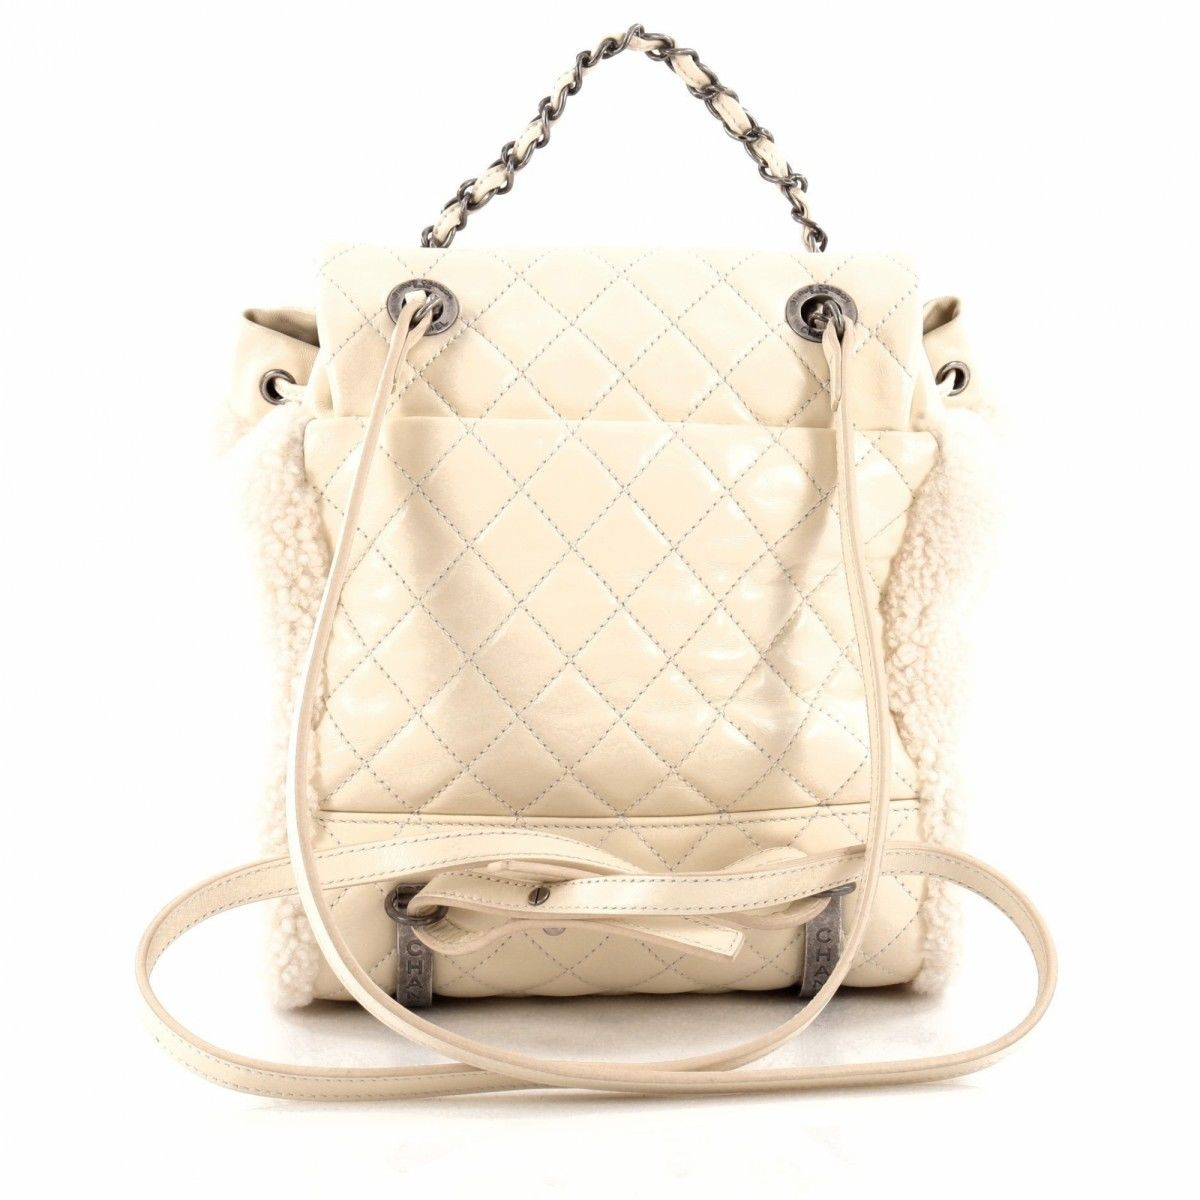 Chanel Mountain Backpack Shearling with Quilted Calfskin Small ... 7c28325d711fe